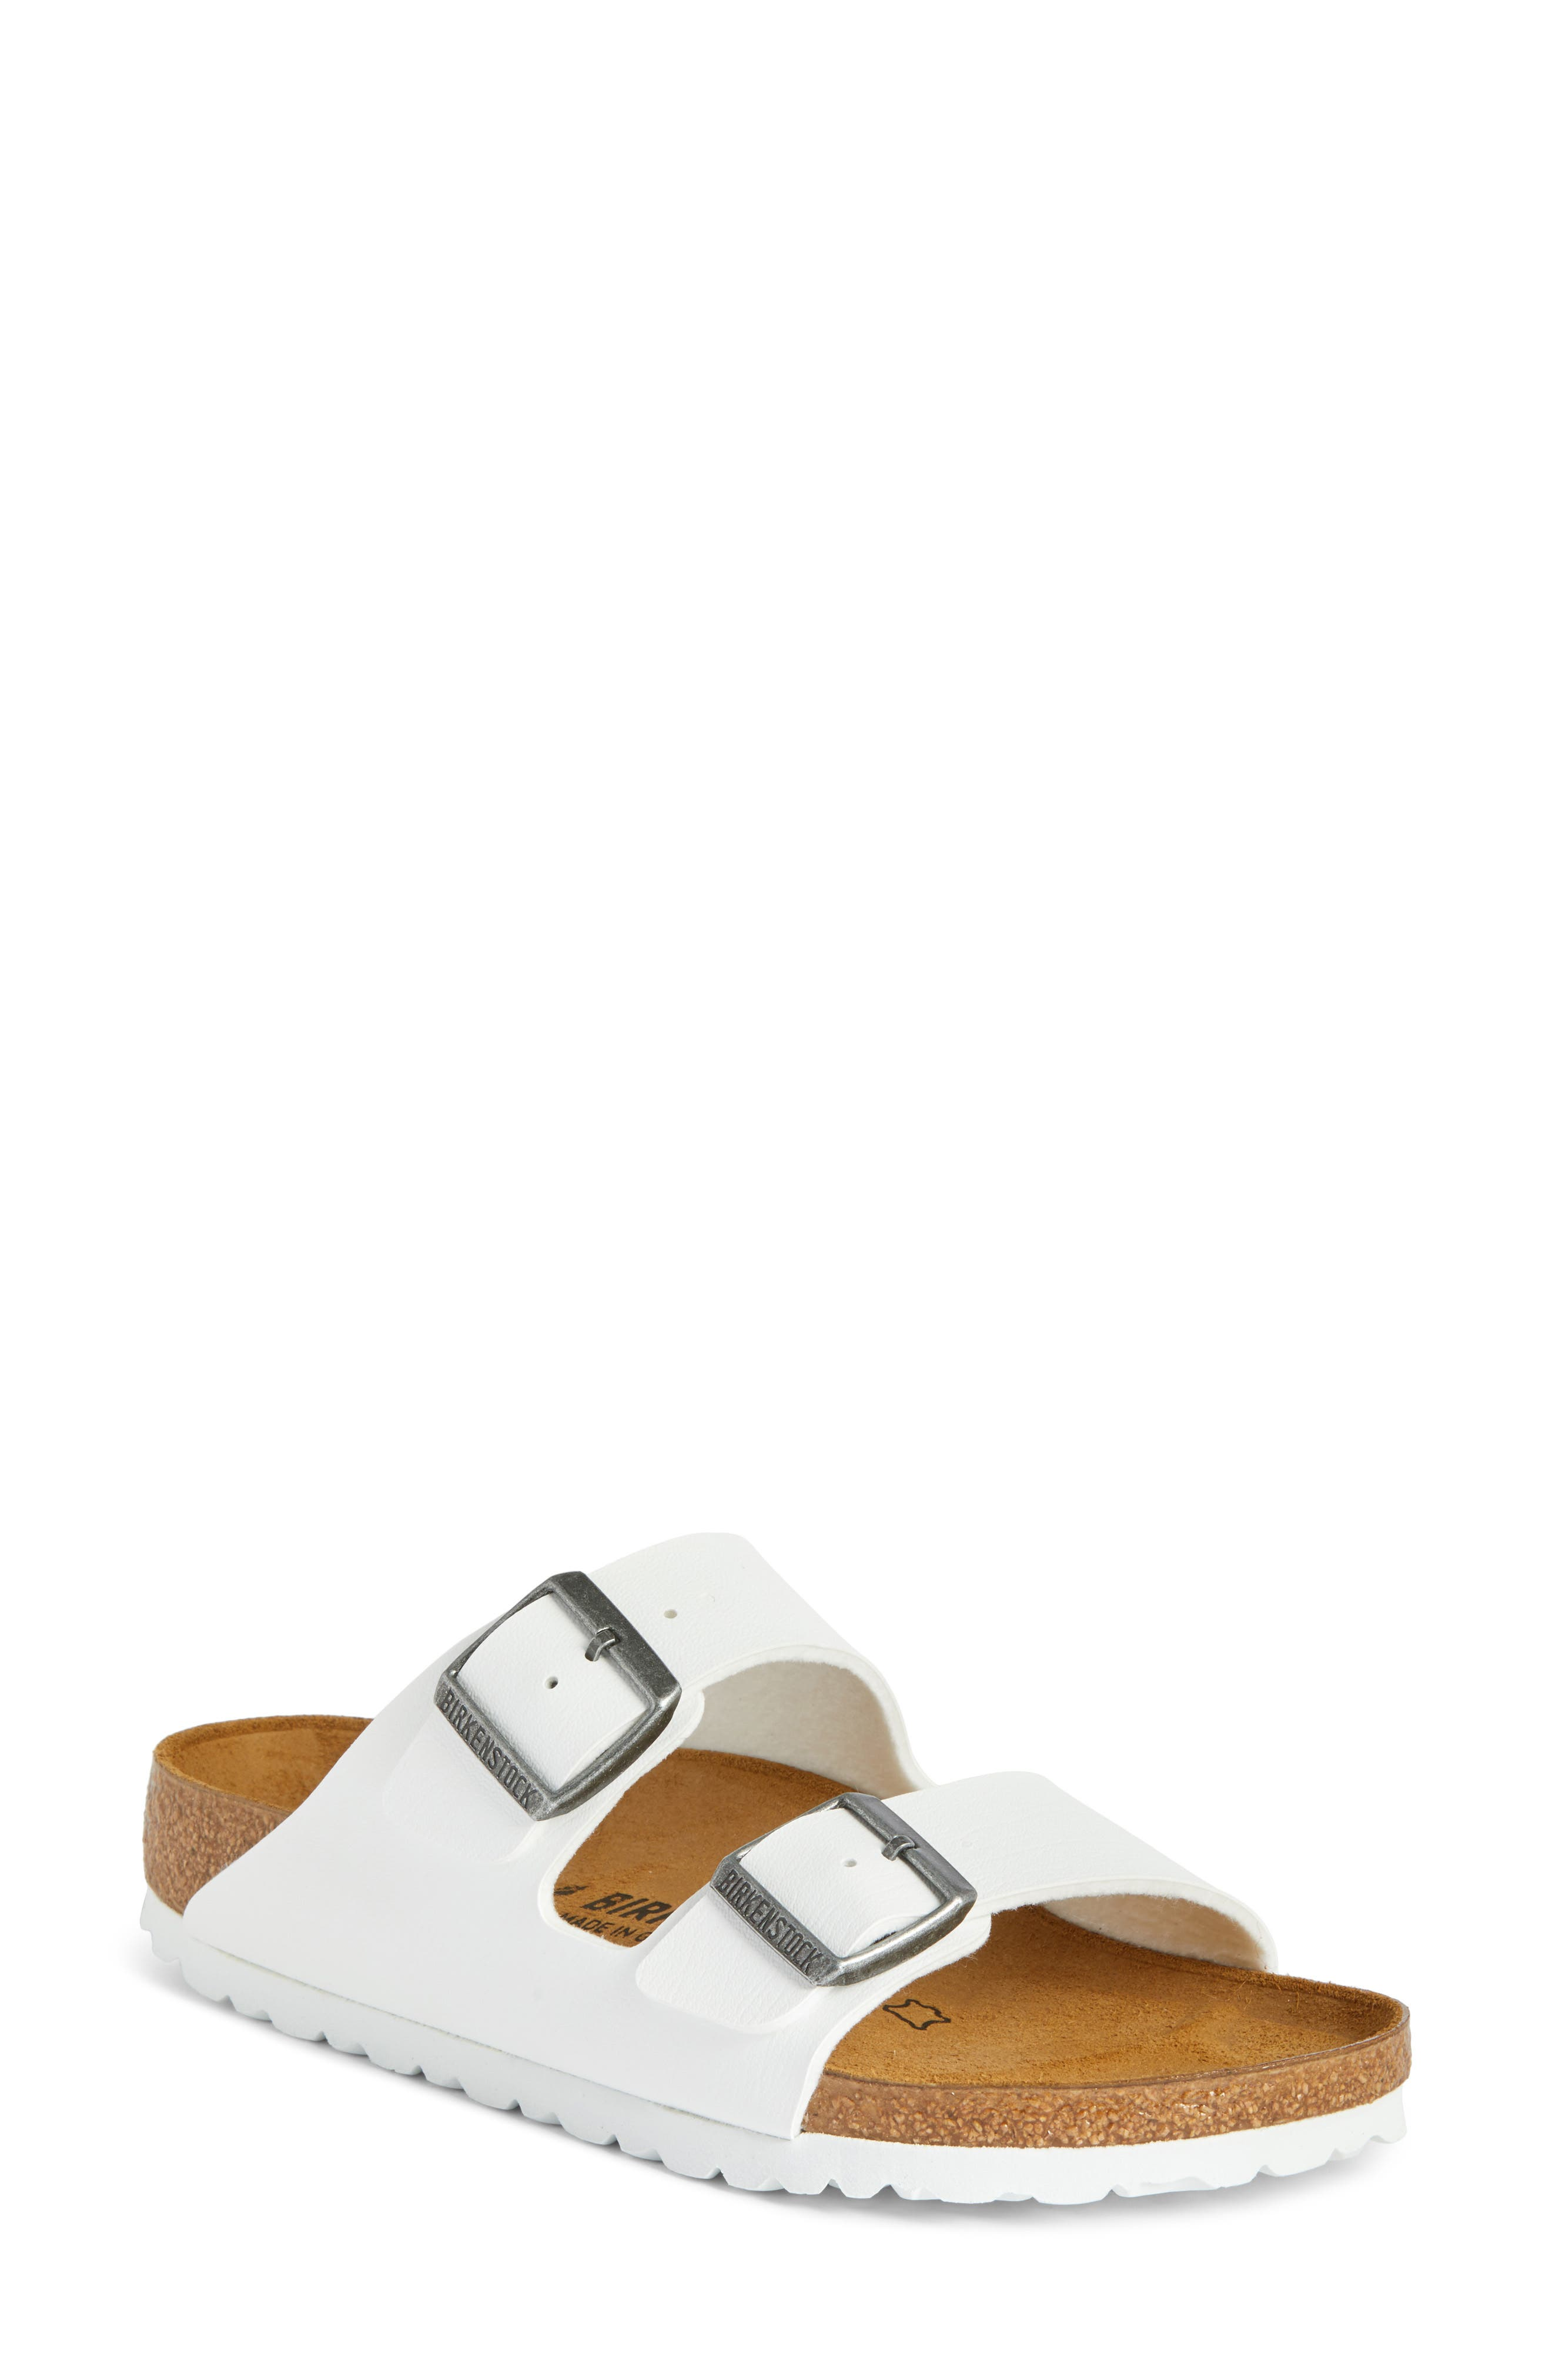 'Arizona' White Birko-Flor Sandal,                         Main,                         color, WHITE SYNTHETIC LEATHER